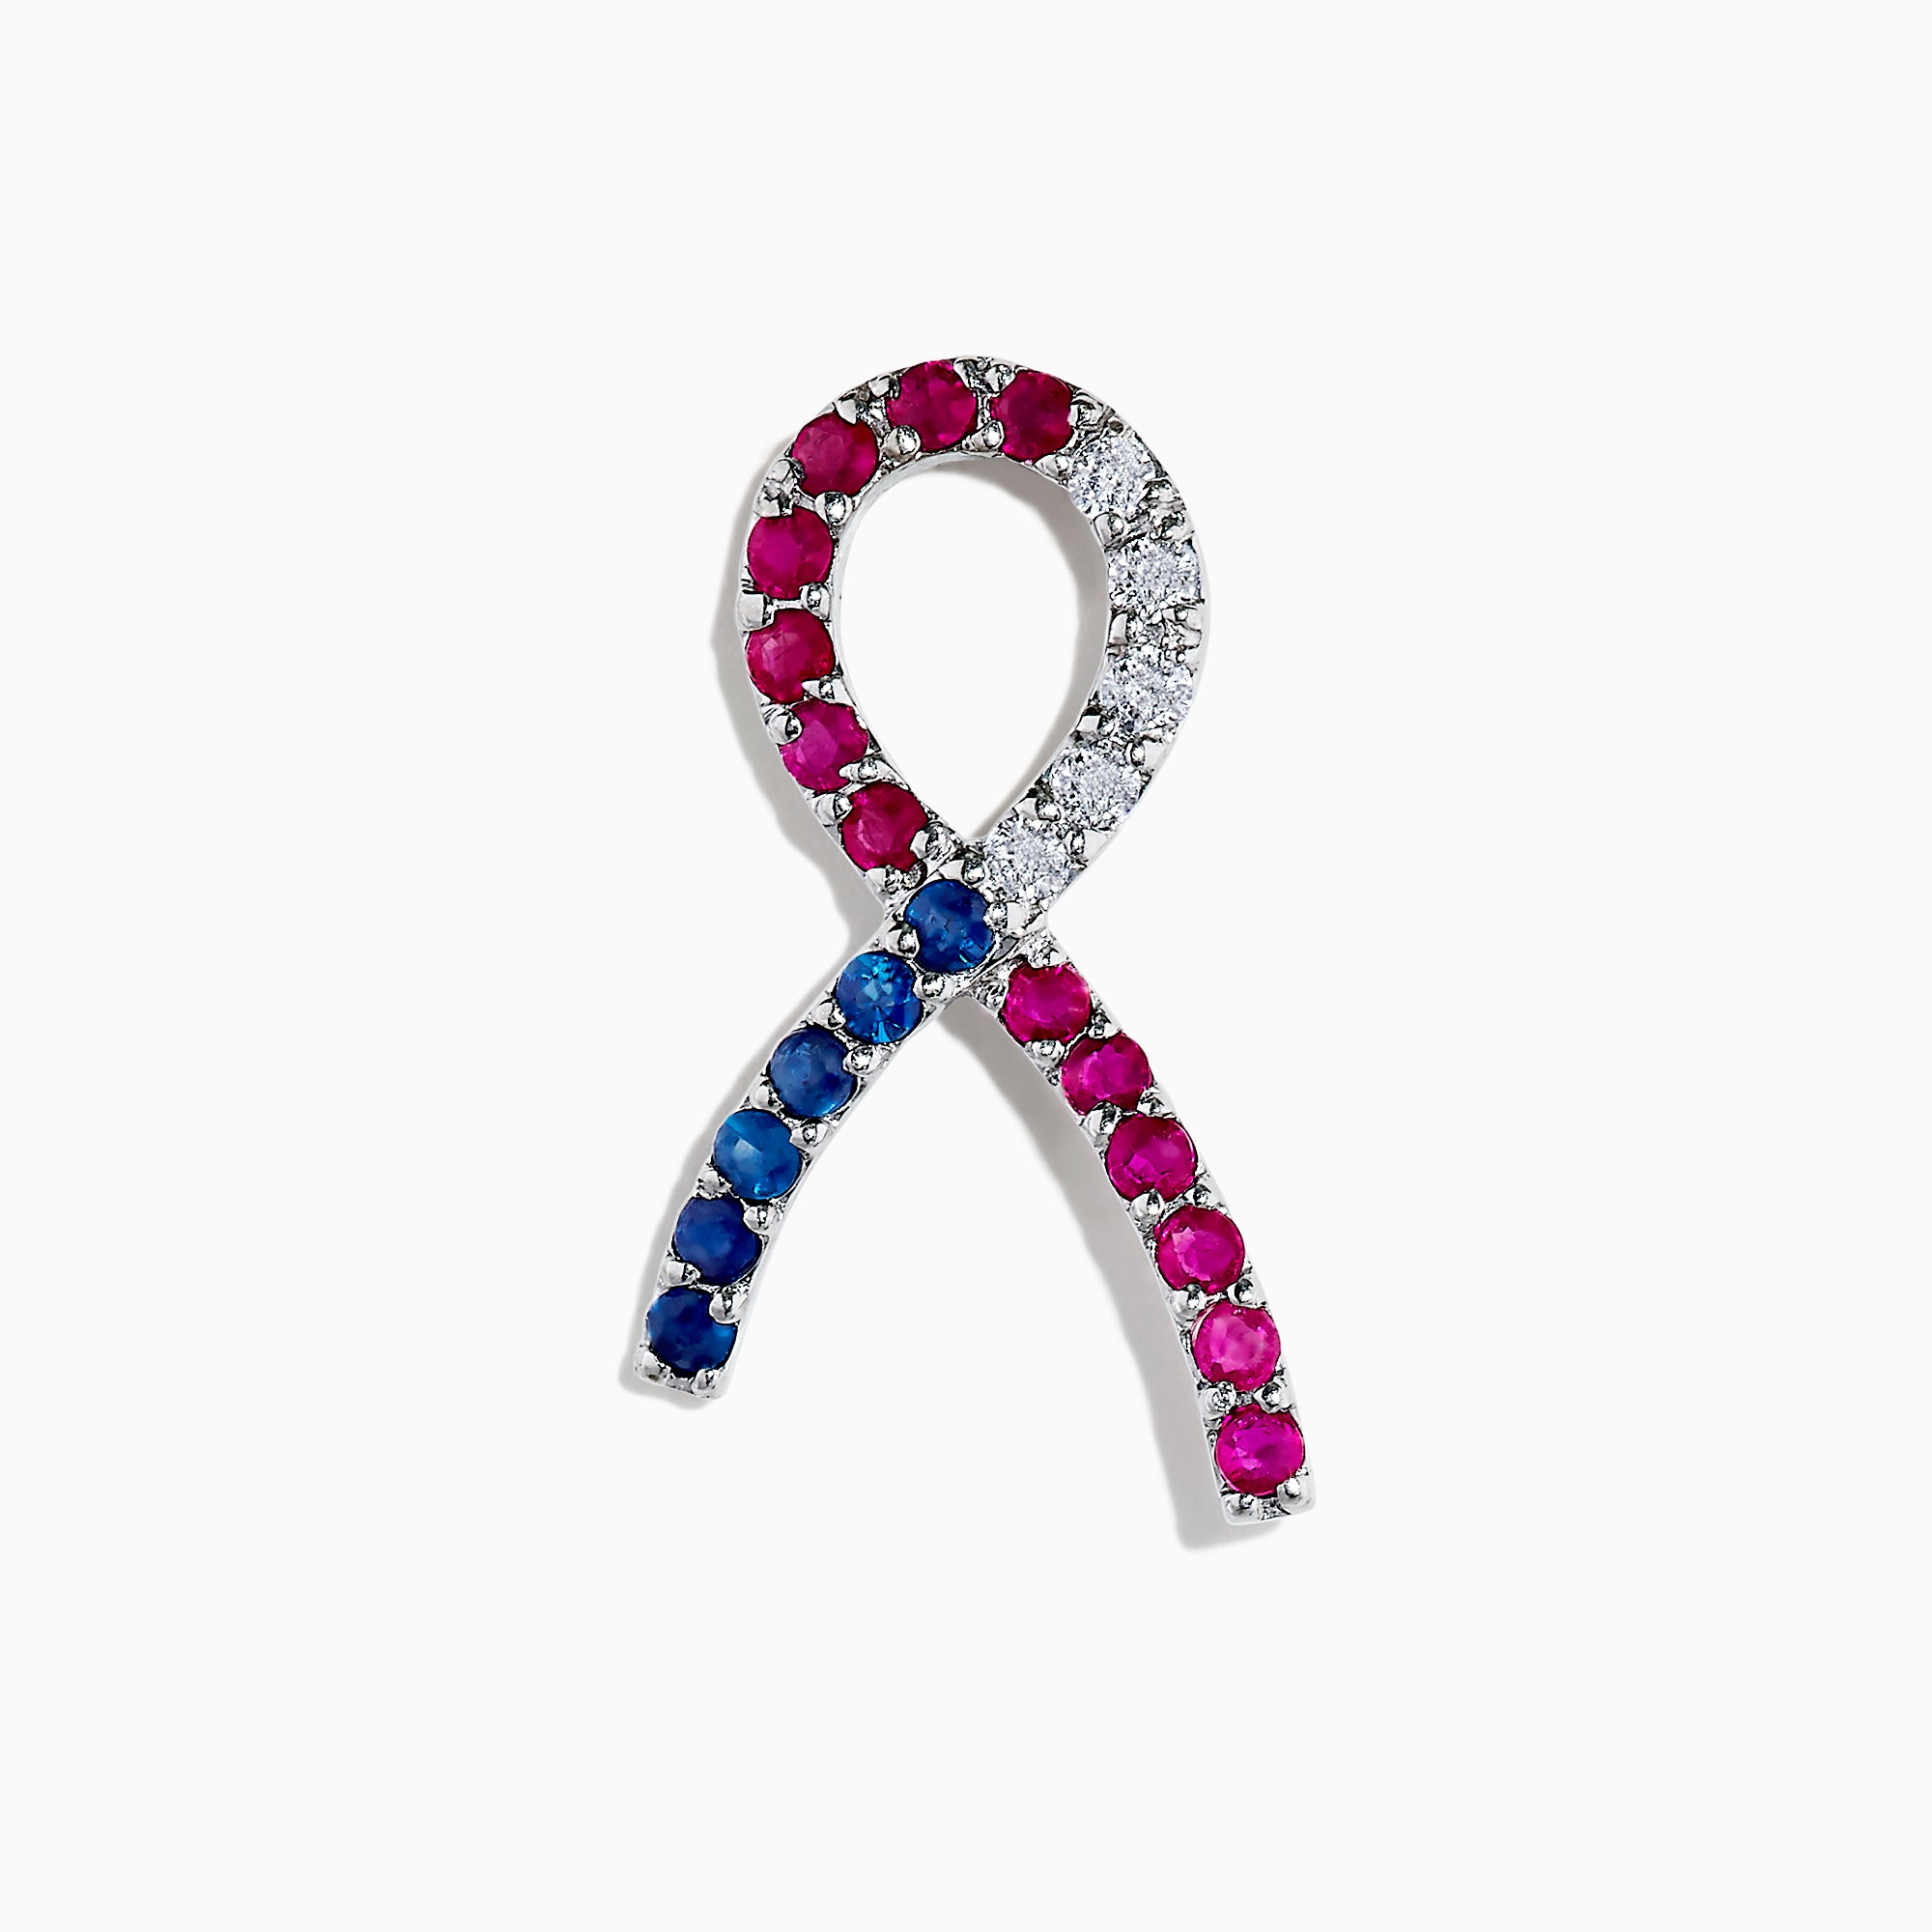 Effy 14K White Gold Ruby, Blue Sapphire Diamond Ribbon Pin, 1.07 TCW